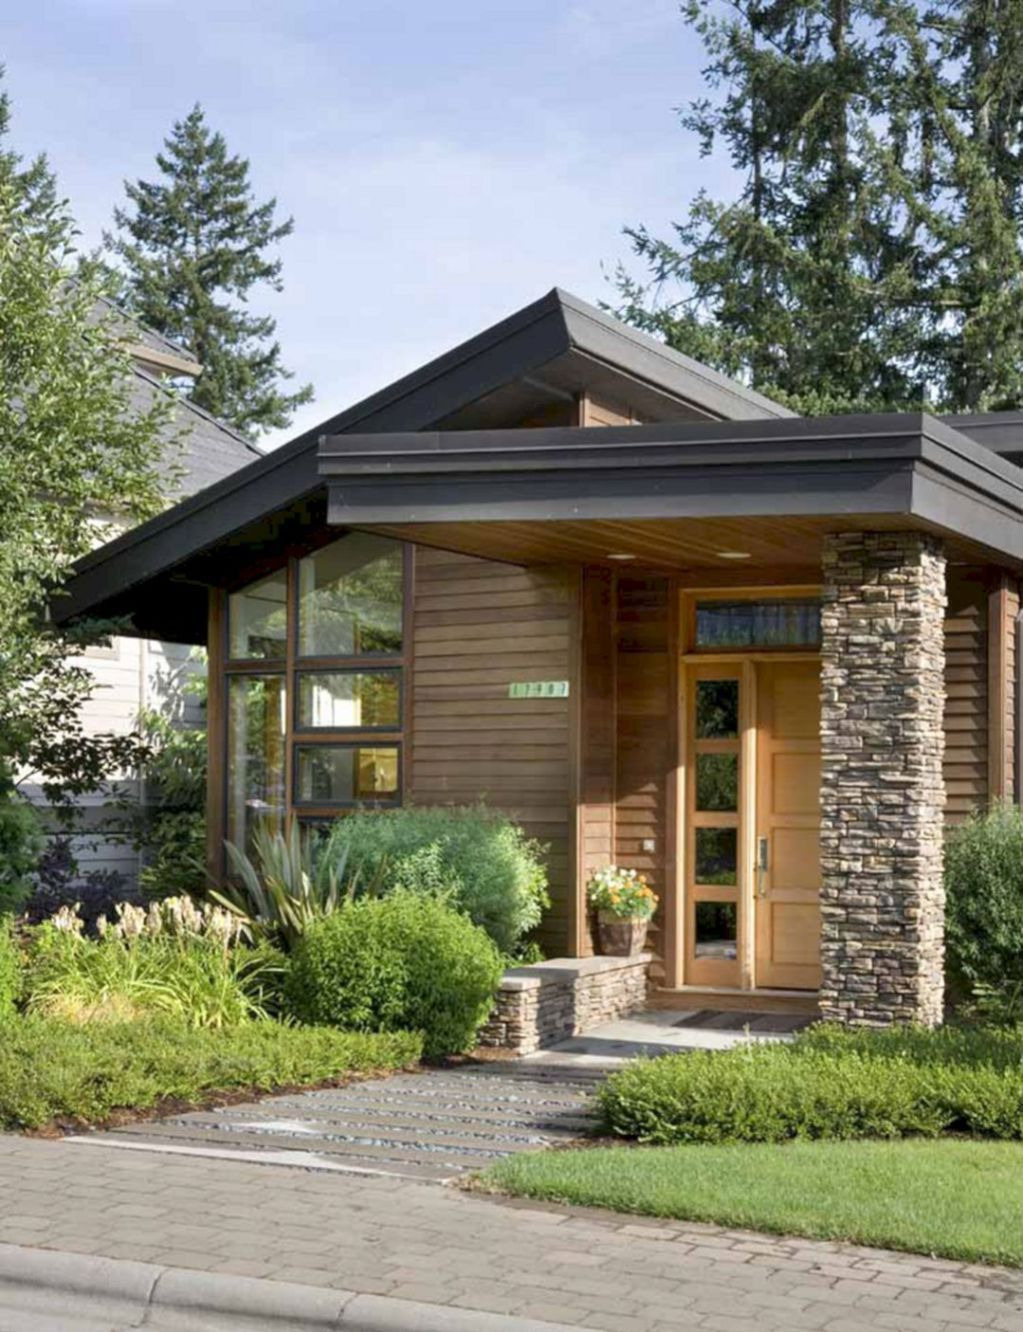 Best Small House Plans Residential Architecture Lovely top 10 Modern Tiny House Design and Small Homes Collections